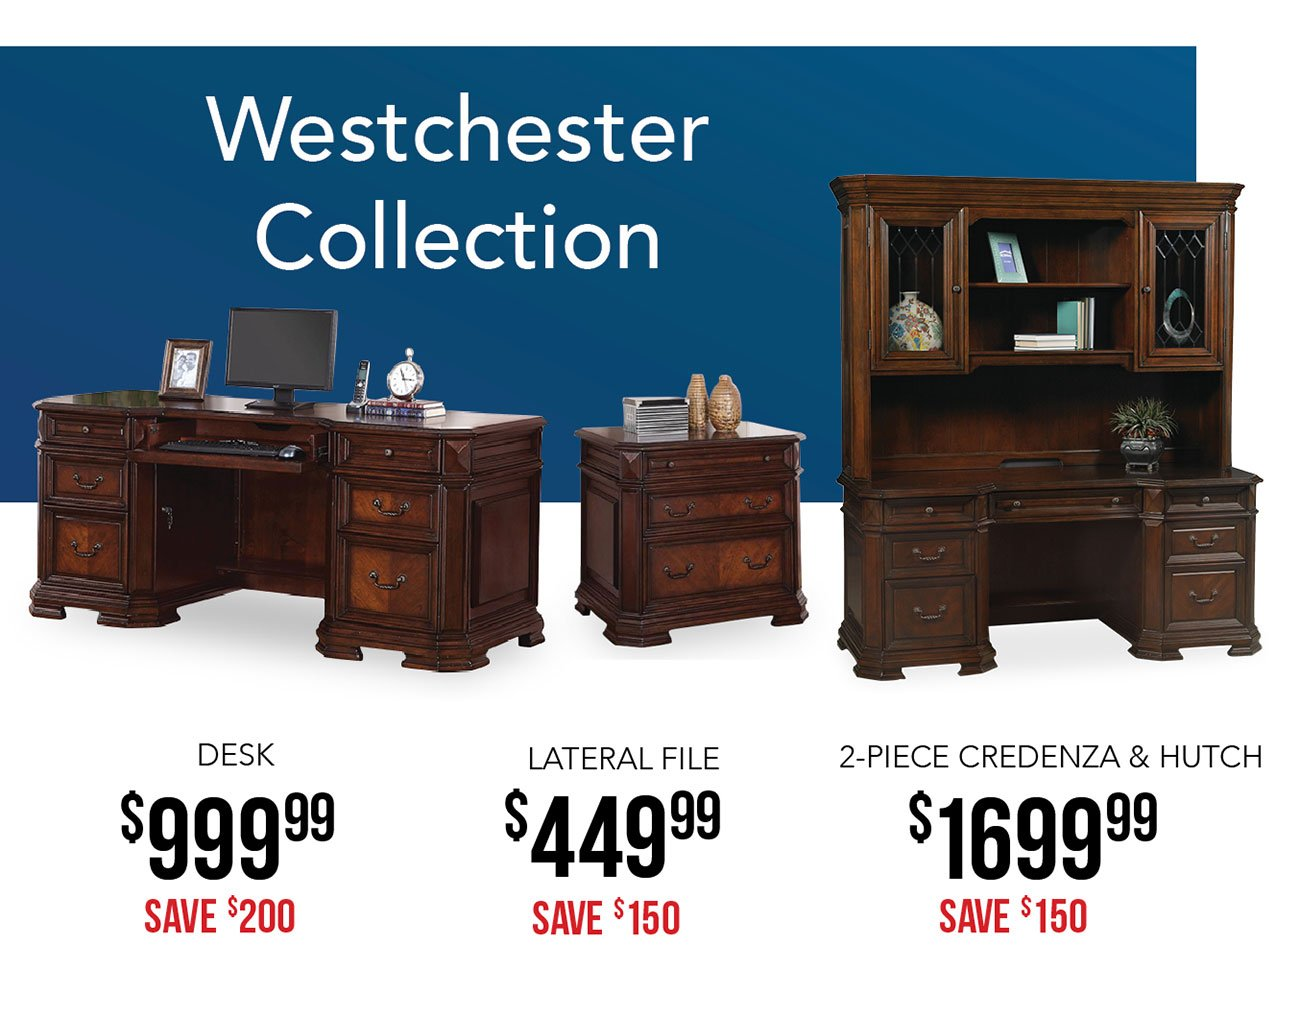 Westchester-collection